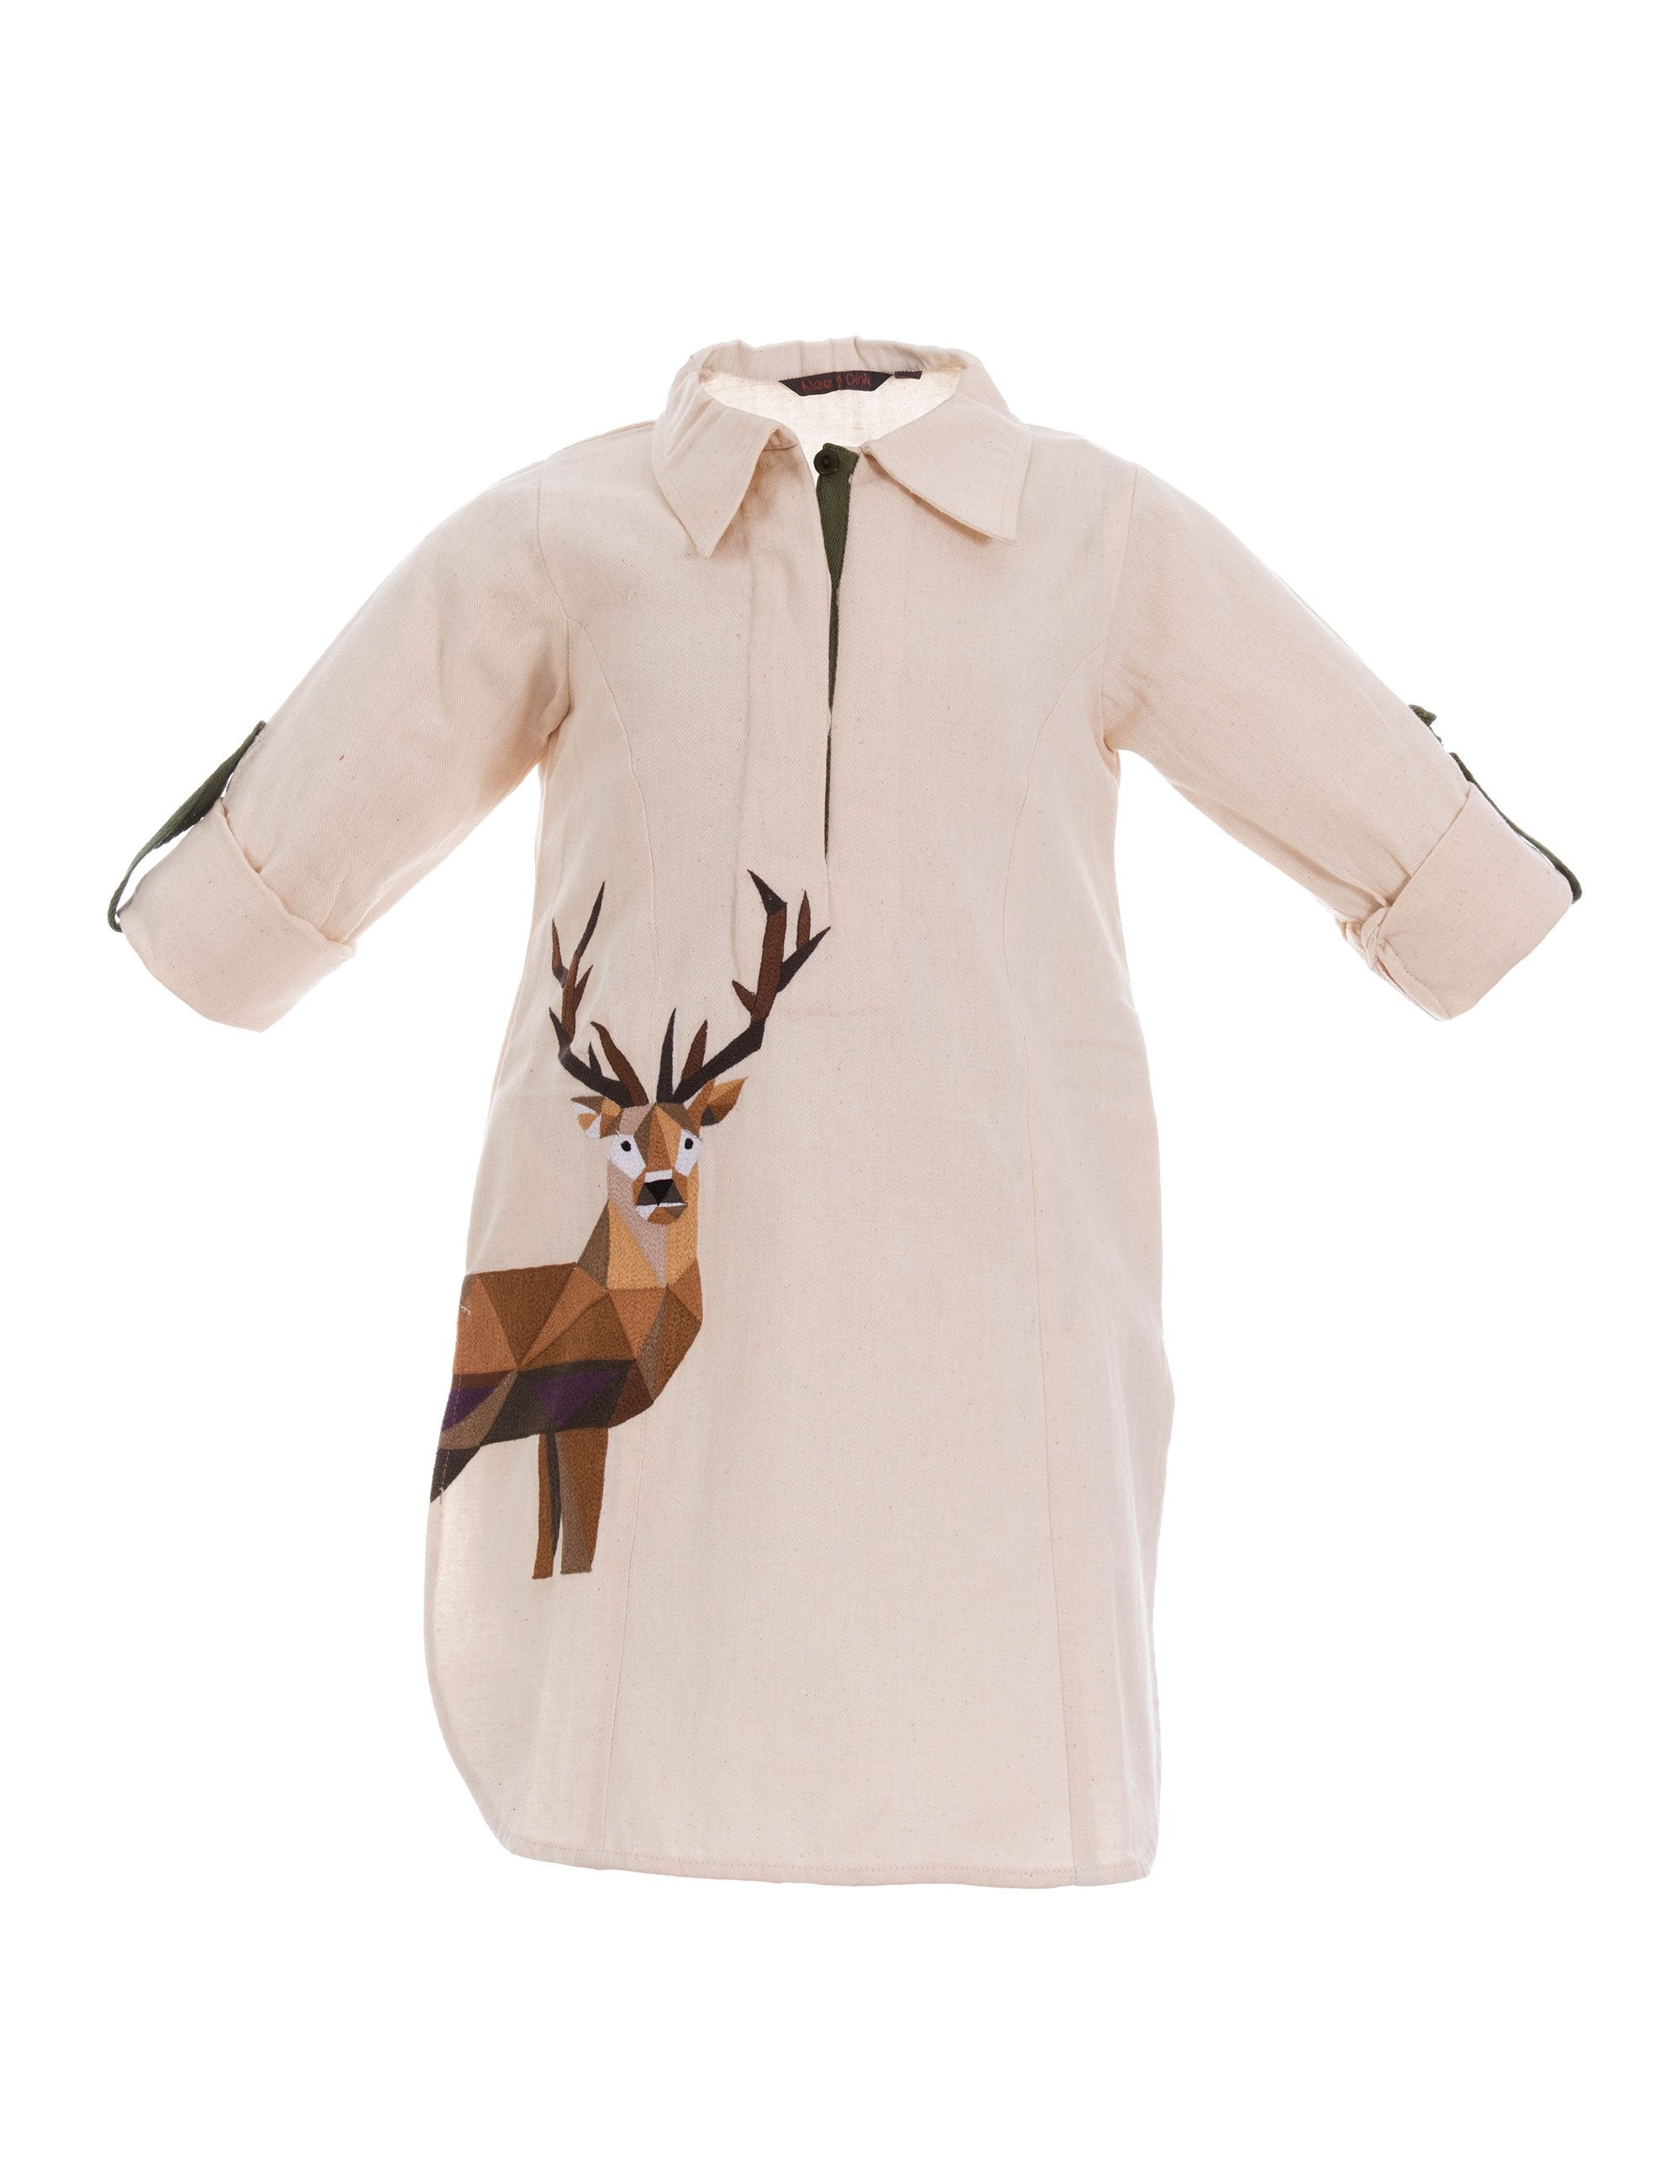 Deer To My Heart Shirt Dress in Off White for Girls